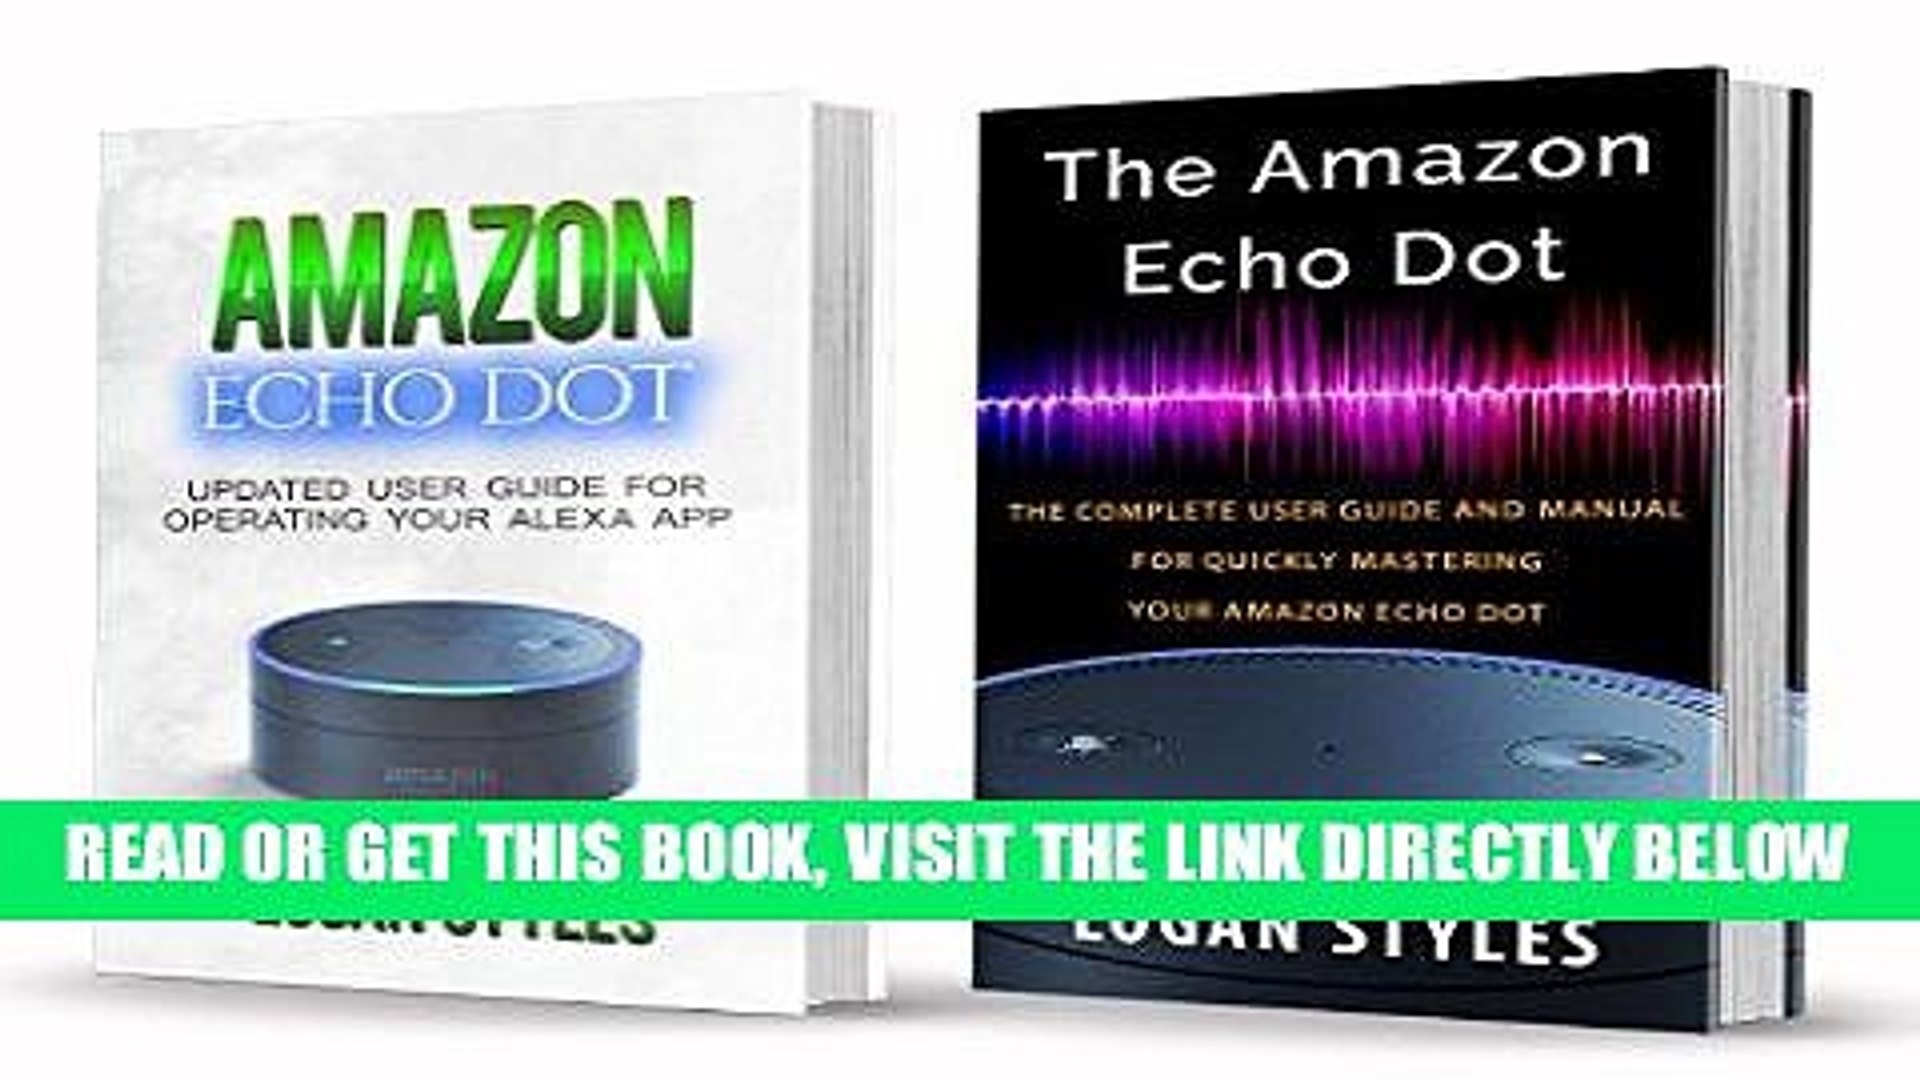 [EBOOK] DOWNLOAD Amazon Echo Dot: 2 Manuscripts-Amazon Echo Dot User Guide and Amazon Echo Dot: